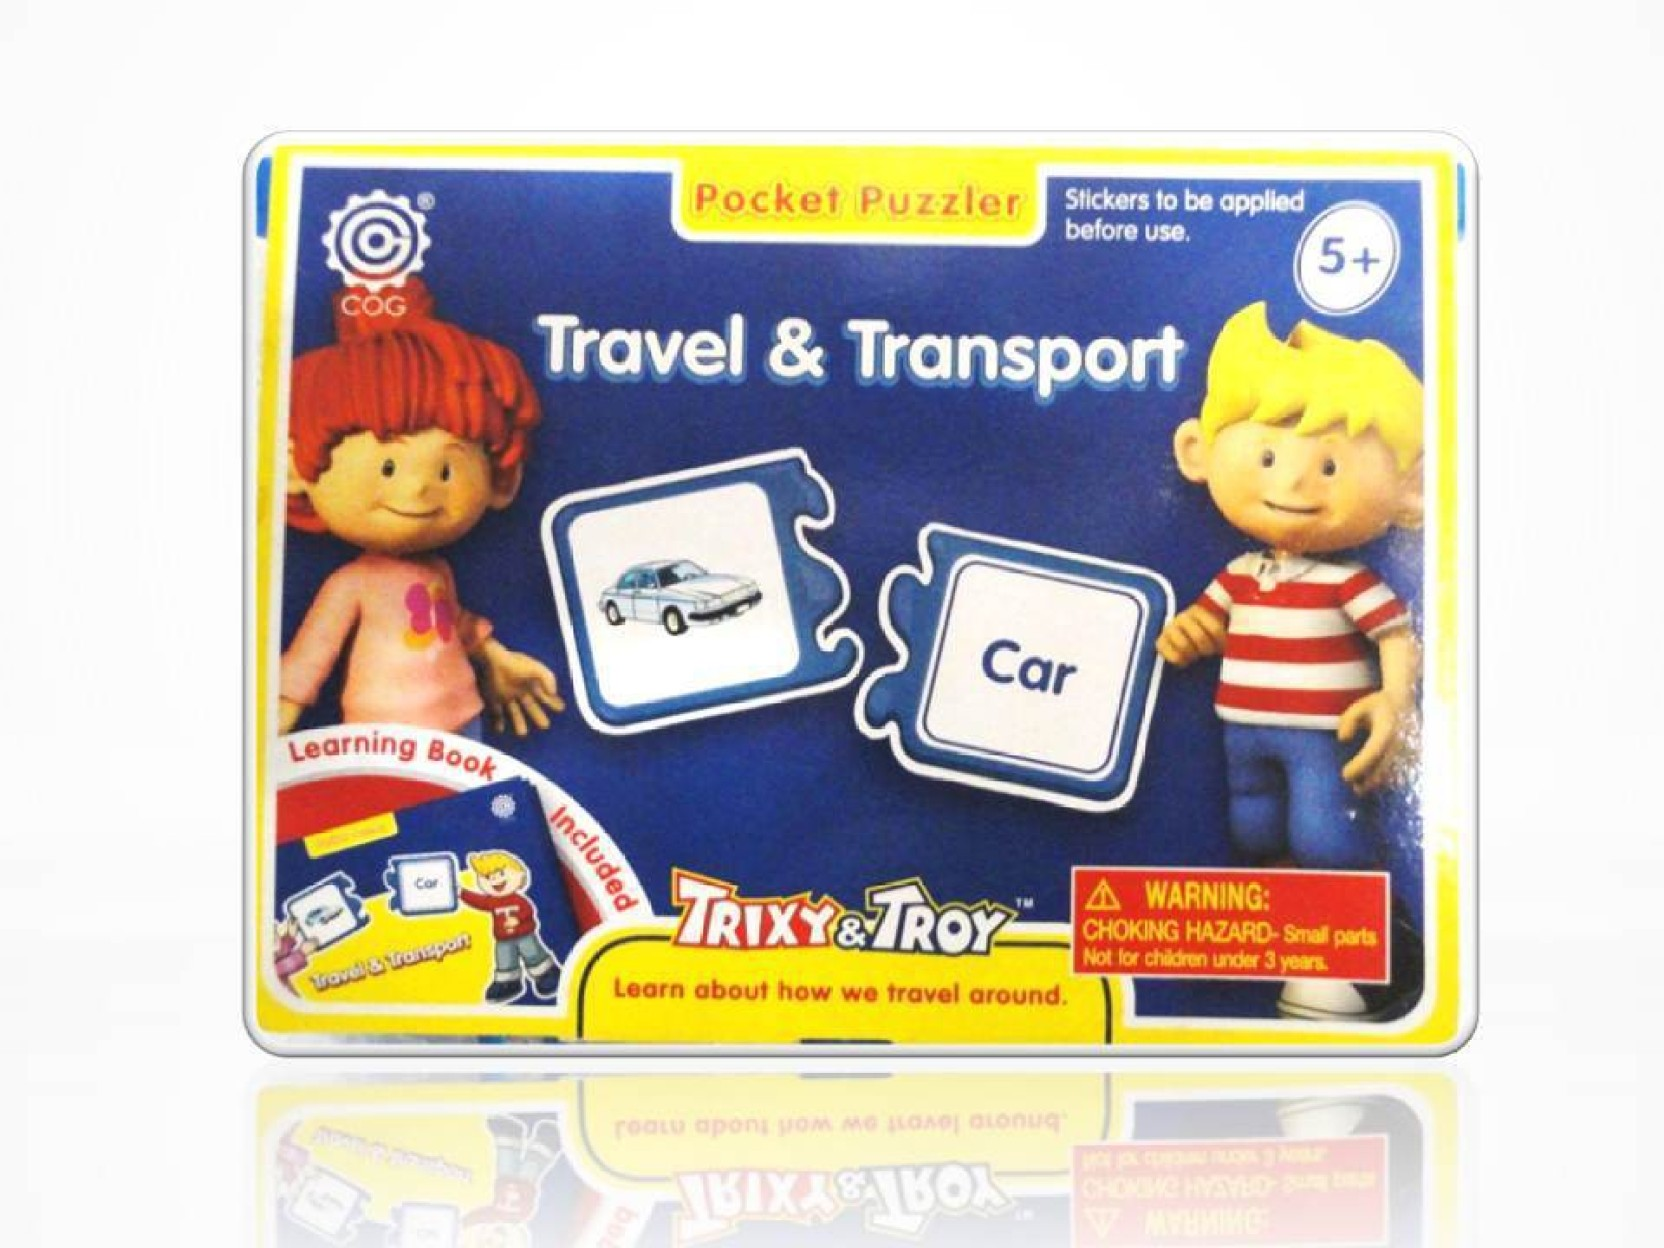 Trixy troy iken pocket puzzler travel transport price in